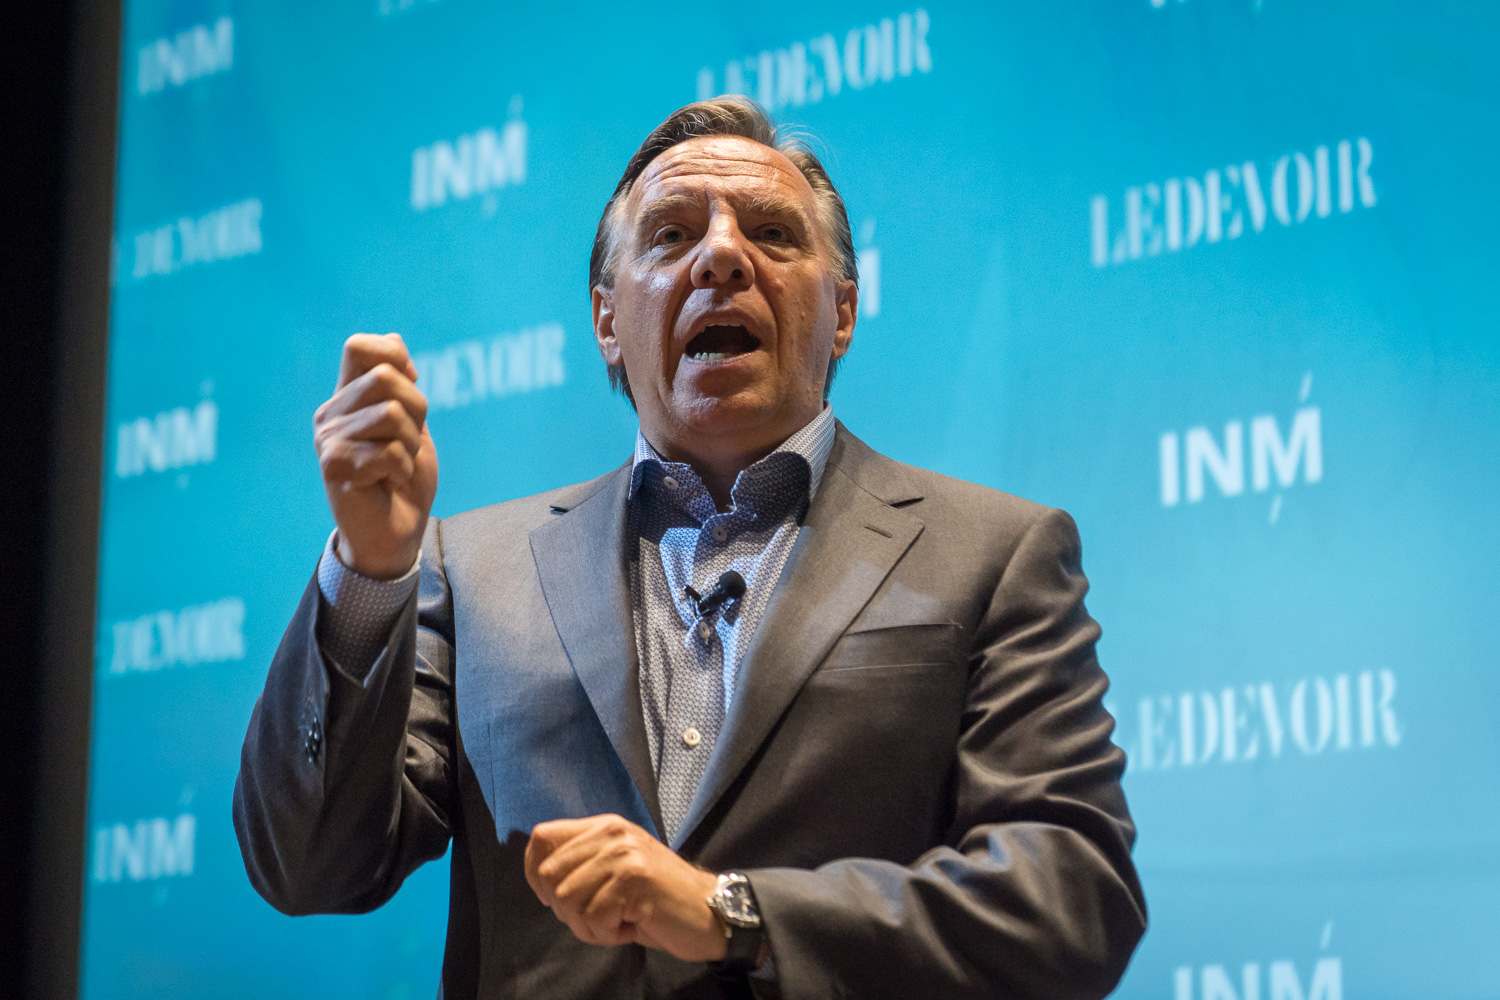 François Legault of Coaltion Avenir Québec takes the stage at an event on August 17 at Concordia University in Montreal